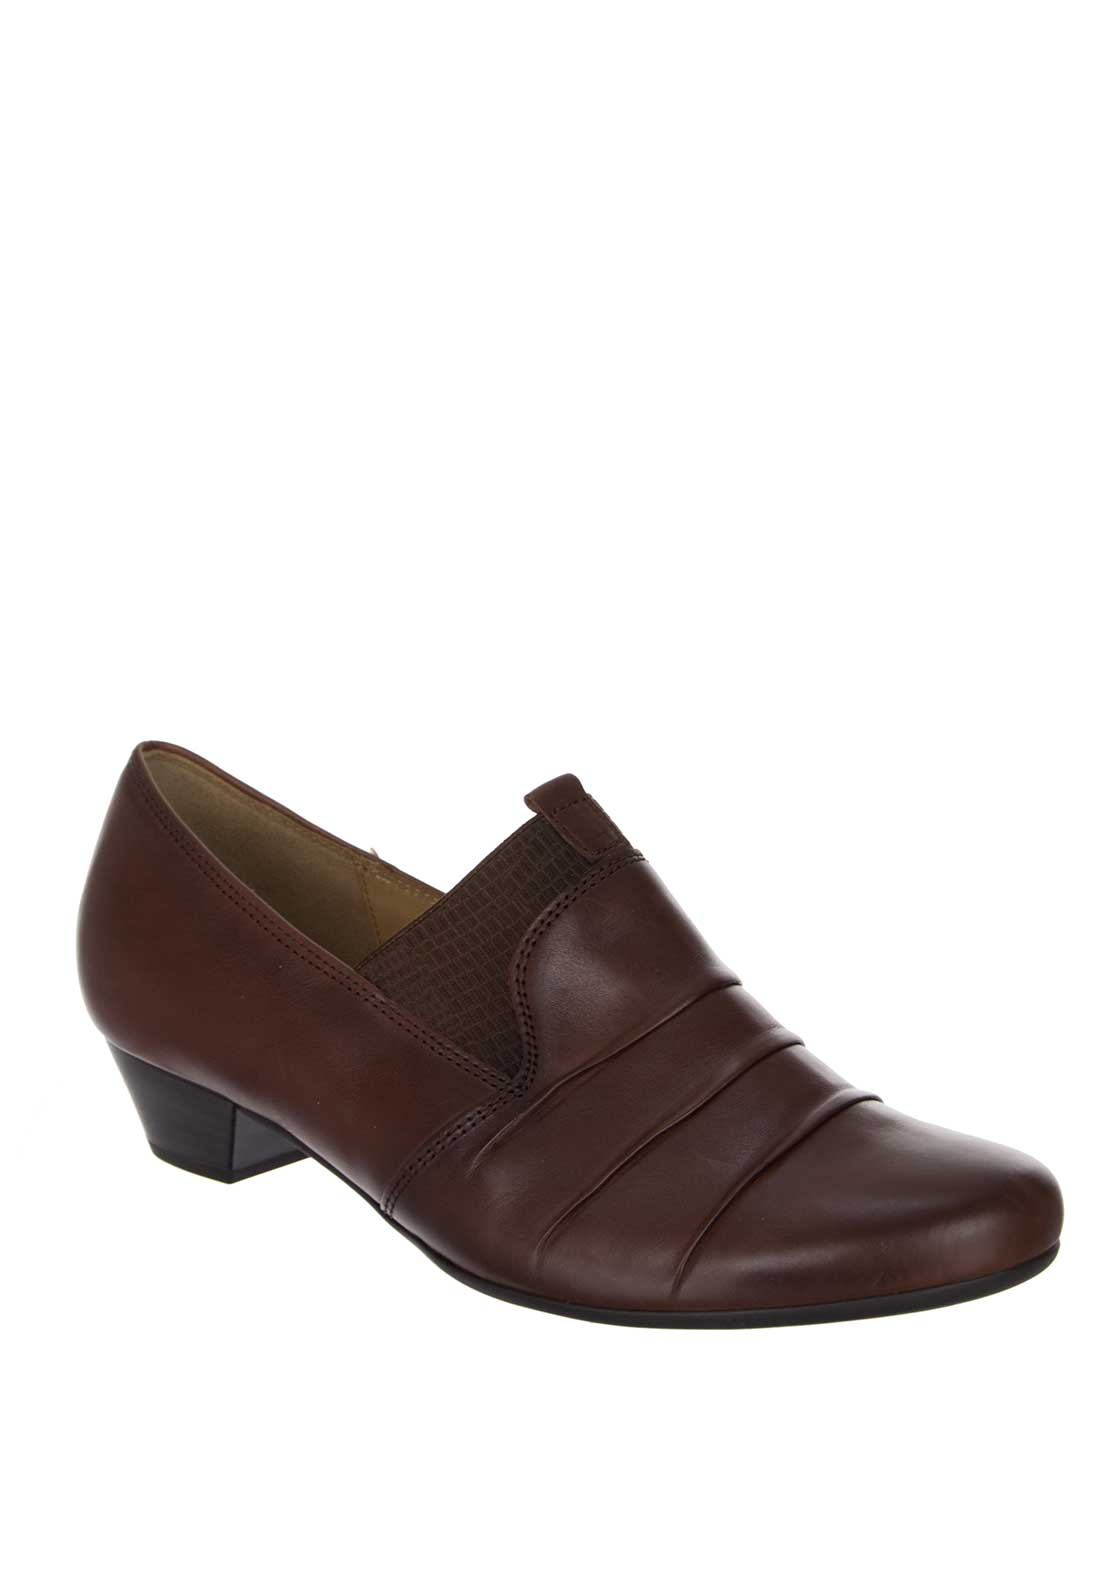 Gabor Women's Casual Shoe, Brown